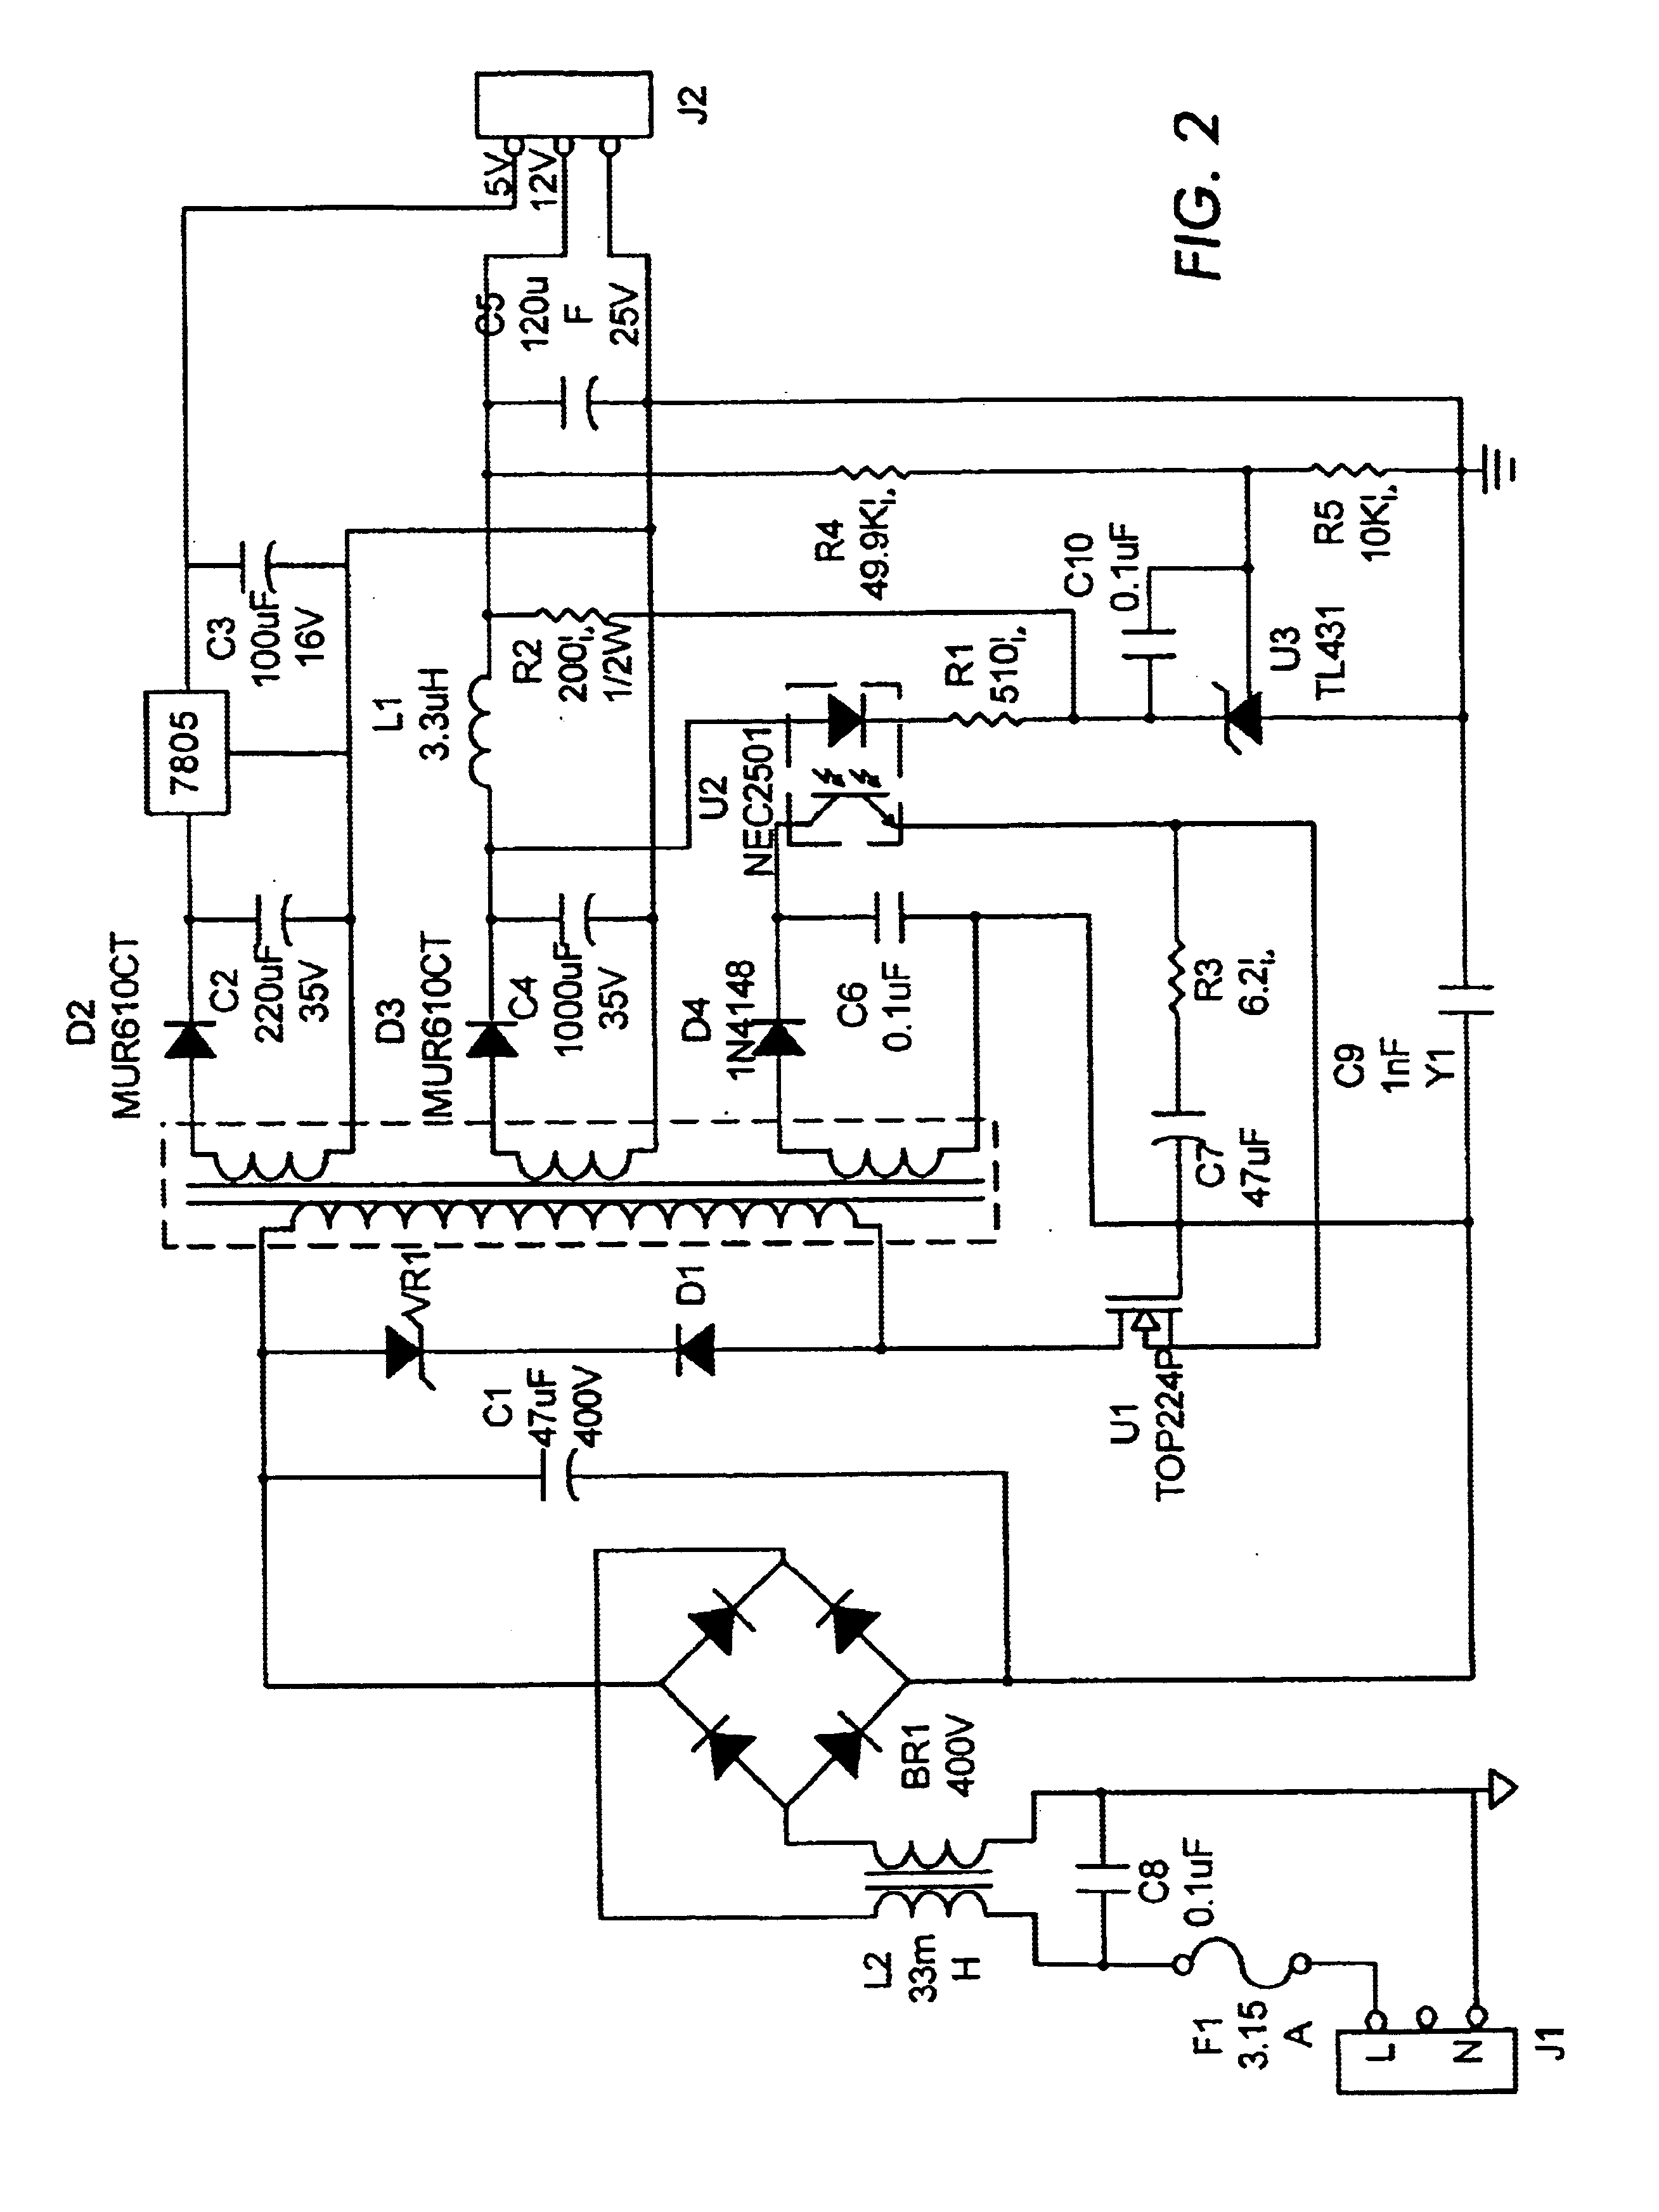 fantastic hisun 700 wiring diagram image collection electrical rh itseo info Basic Air Conditioning Wiring Diagram Air Conditioner Wiring Diagrams